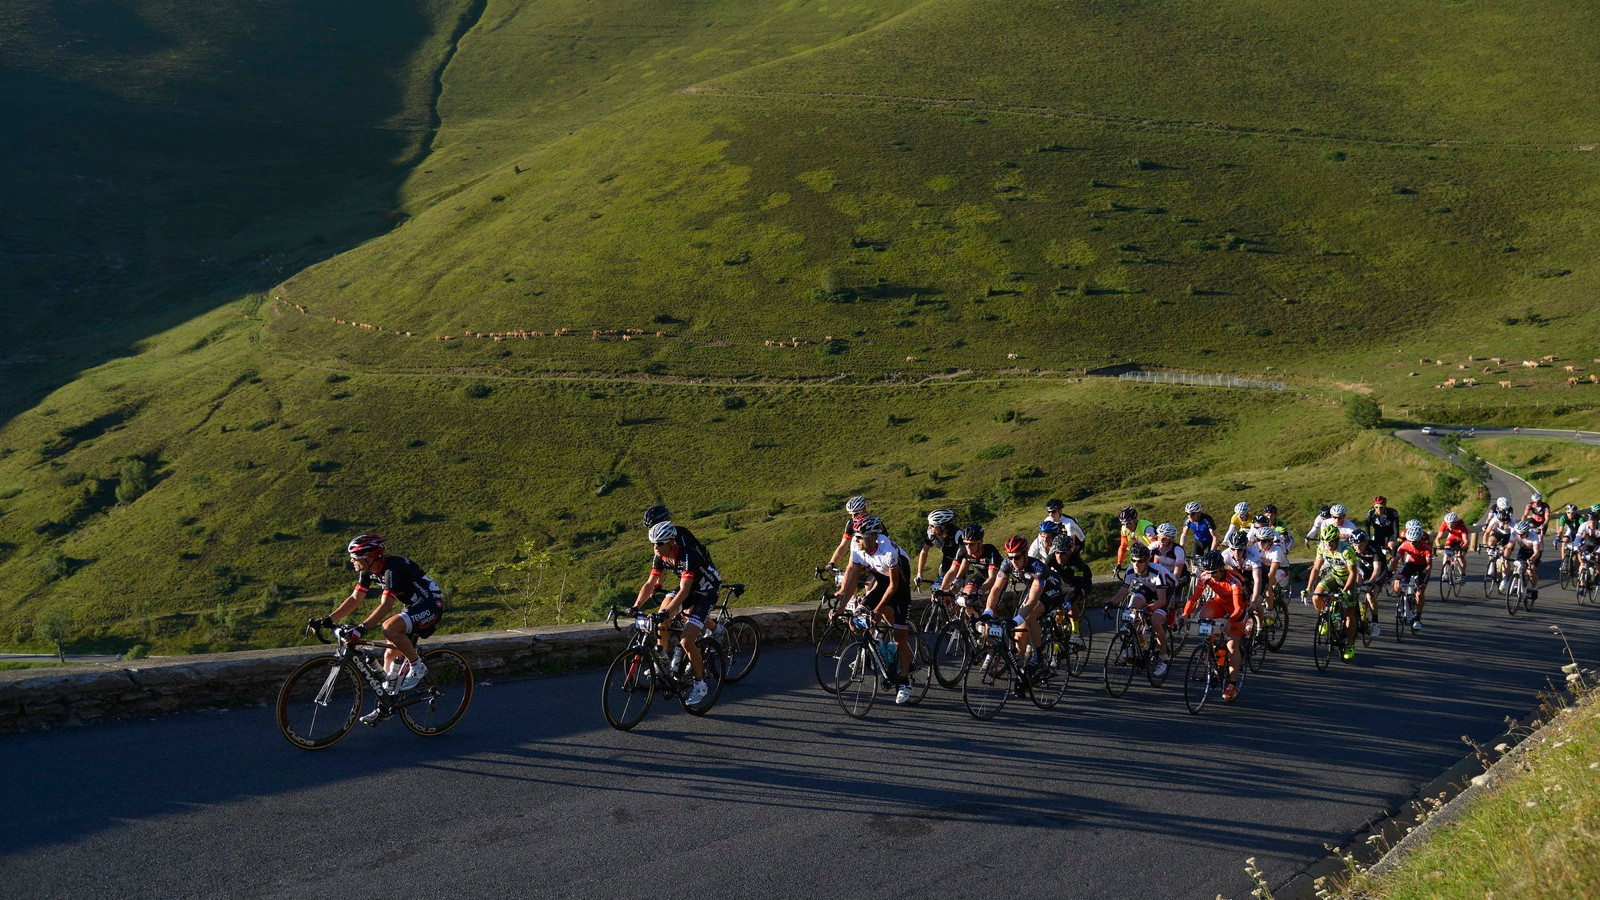 With around 20,000m / 65,000ft of climbing and descending spread over 7 stages, the Haute Route is one of the biggest tests in the amateur road cycling world